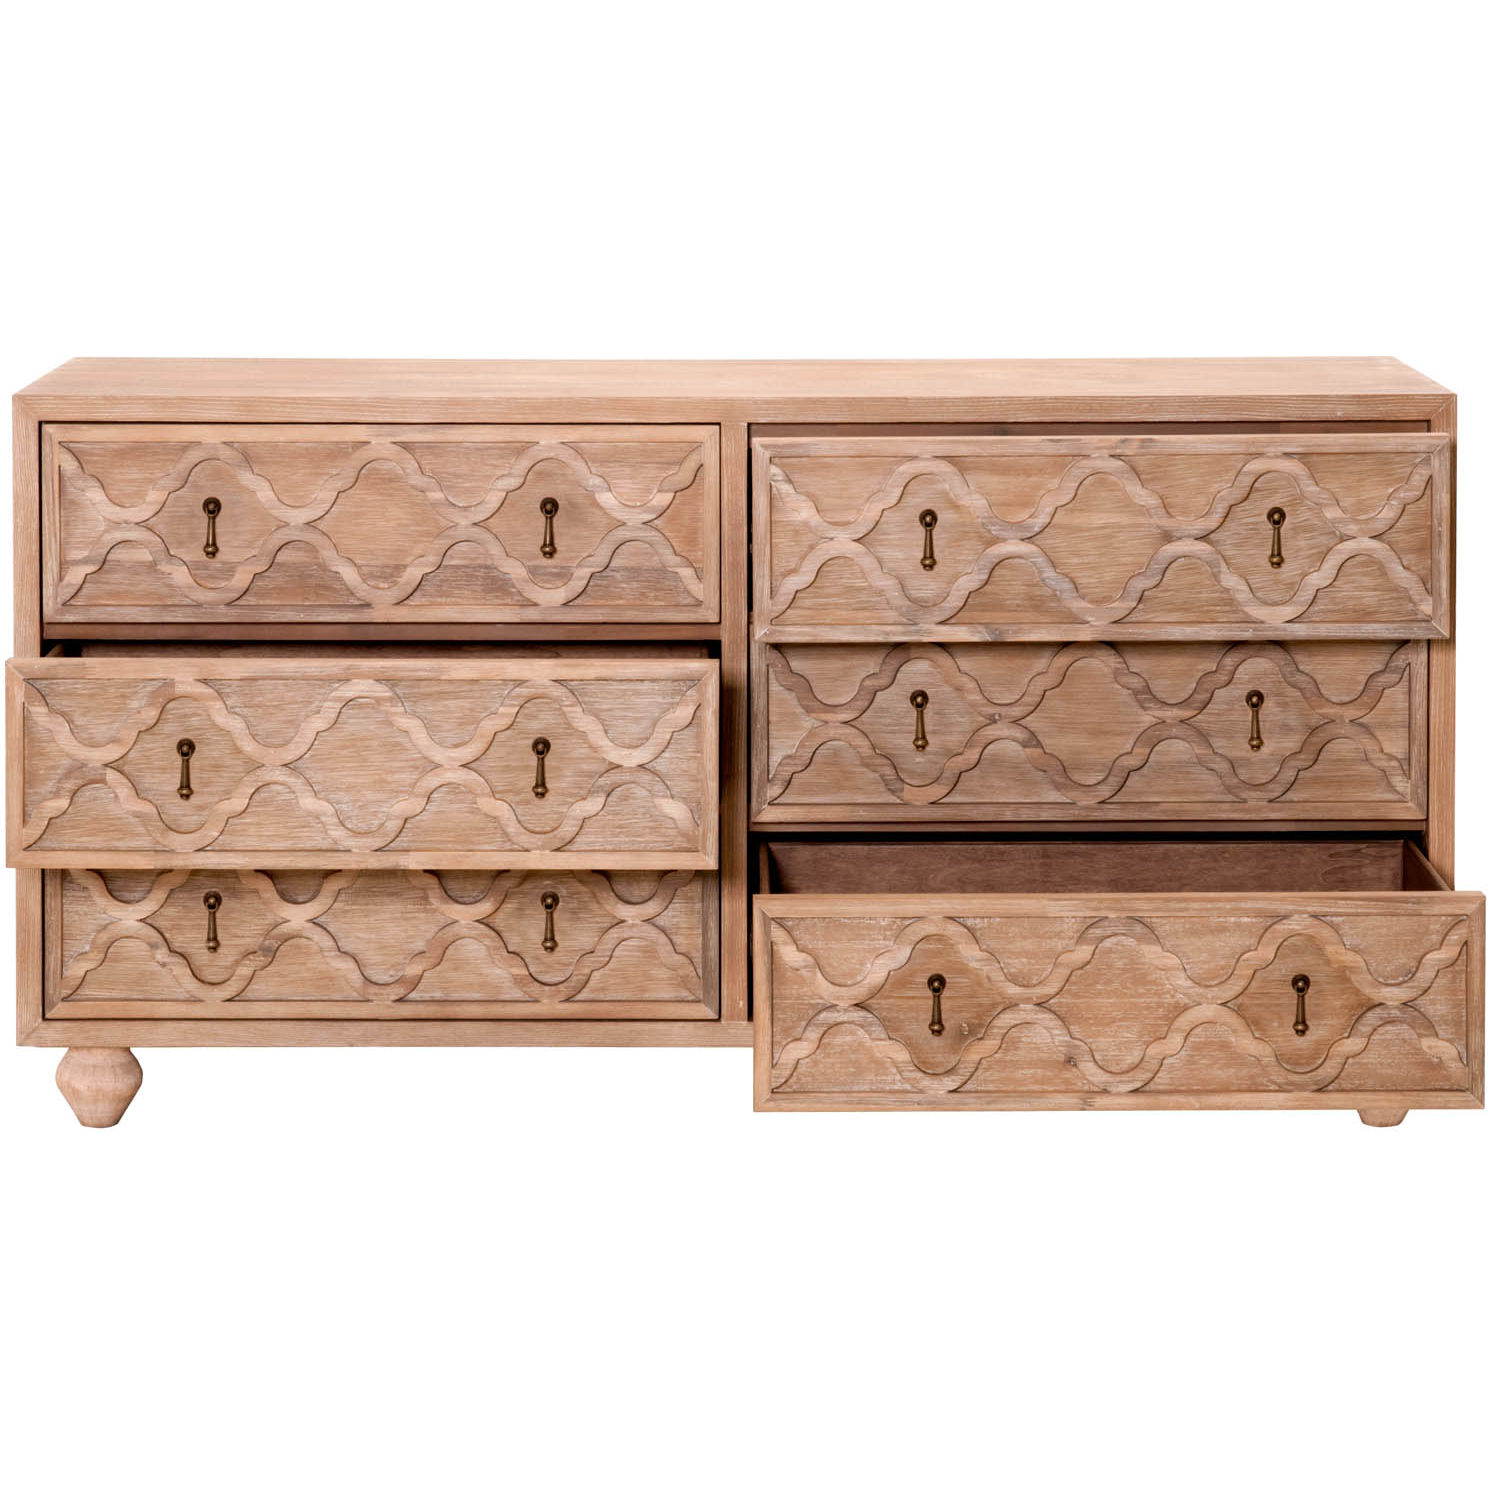 Orient Express Furniture Trellis Double Dresser In Stone Washed Acacia  Veneer. Tap To Expand